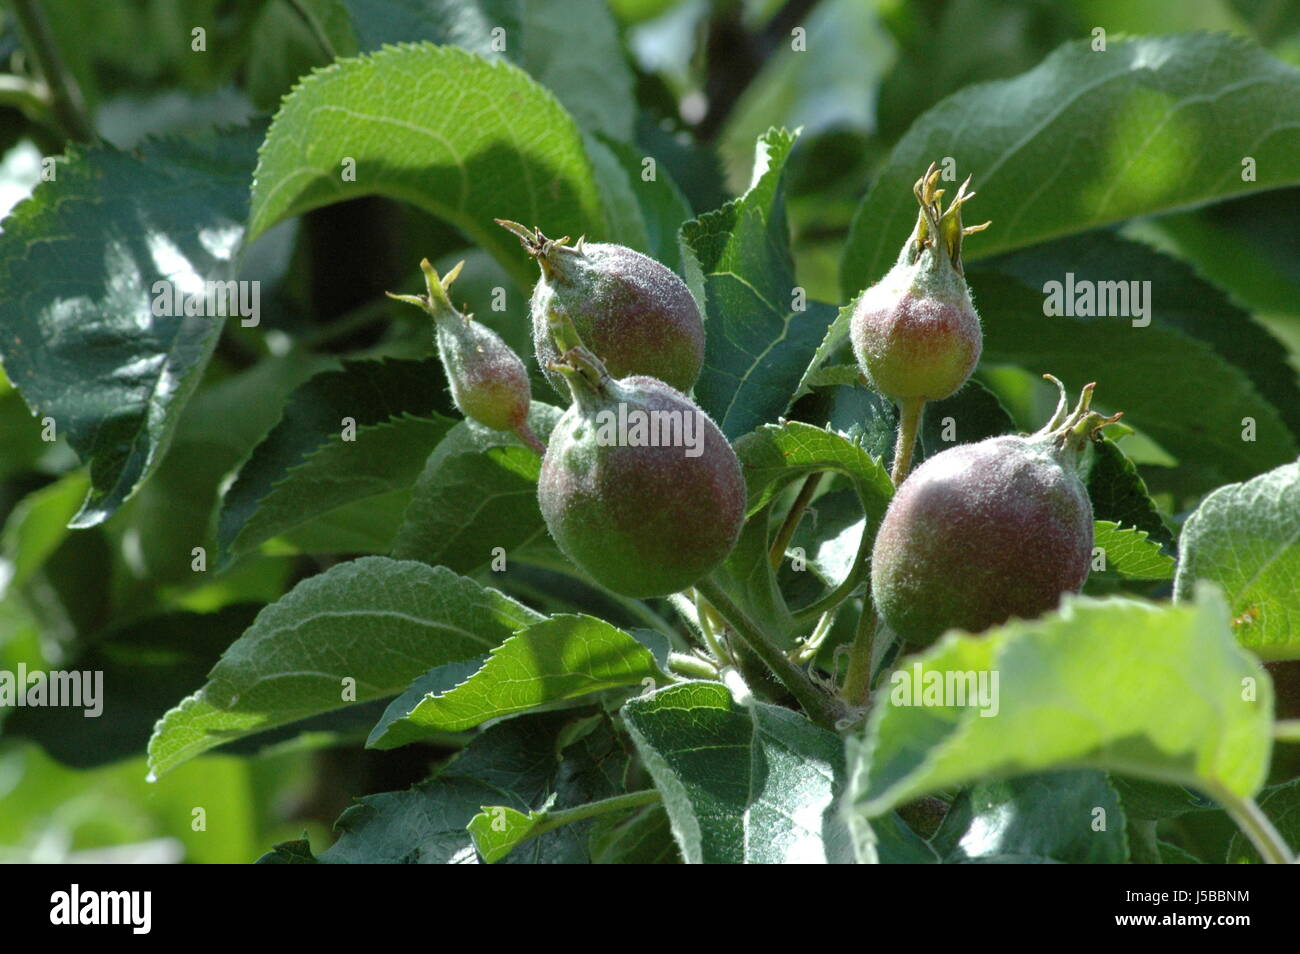 green apple tree leaves. stock photo - tree leaves apple pome fruit apples immature infantile childish grow green